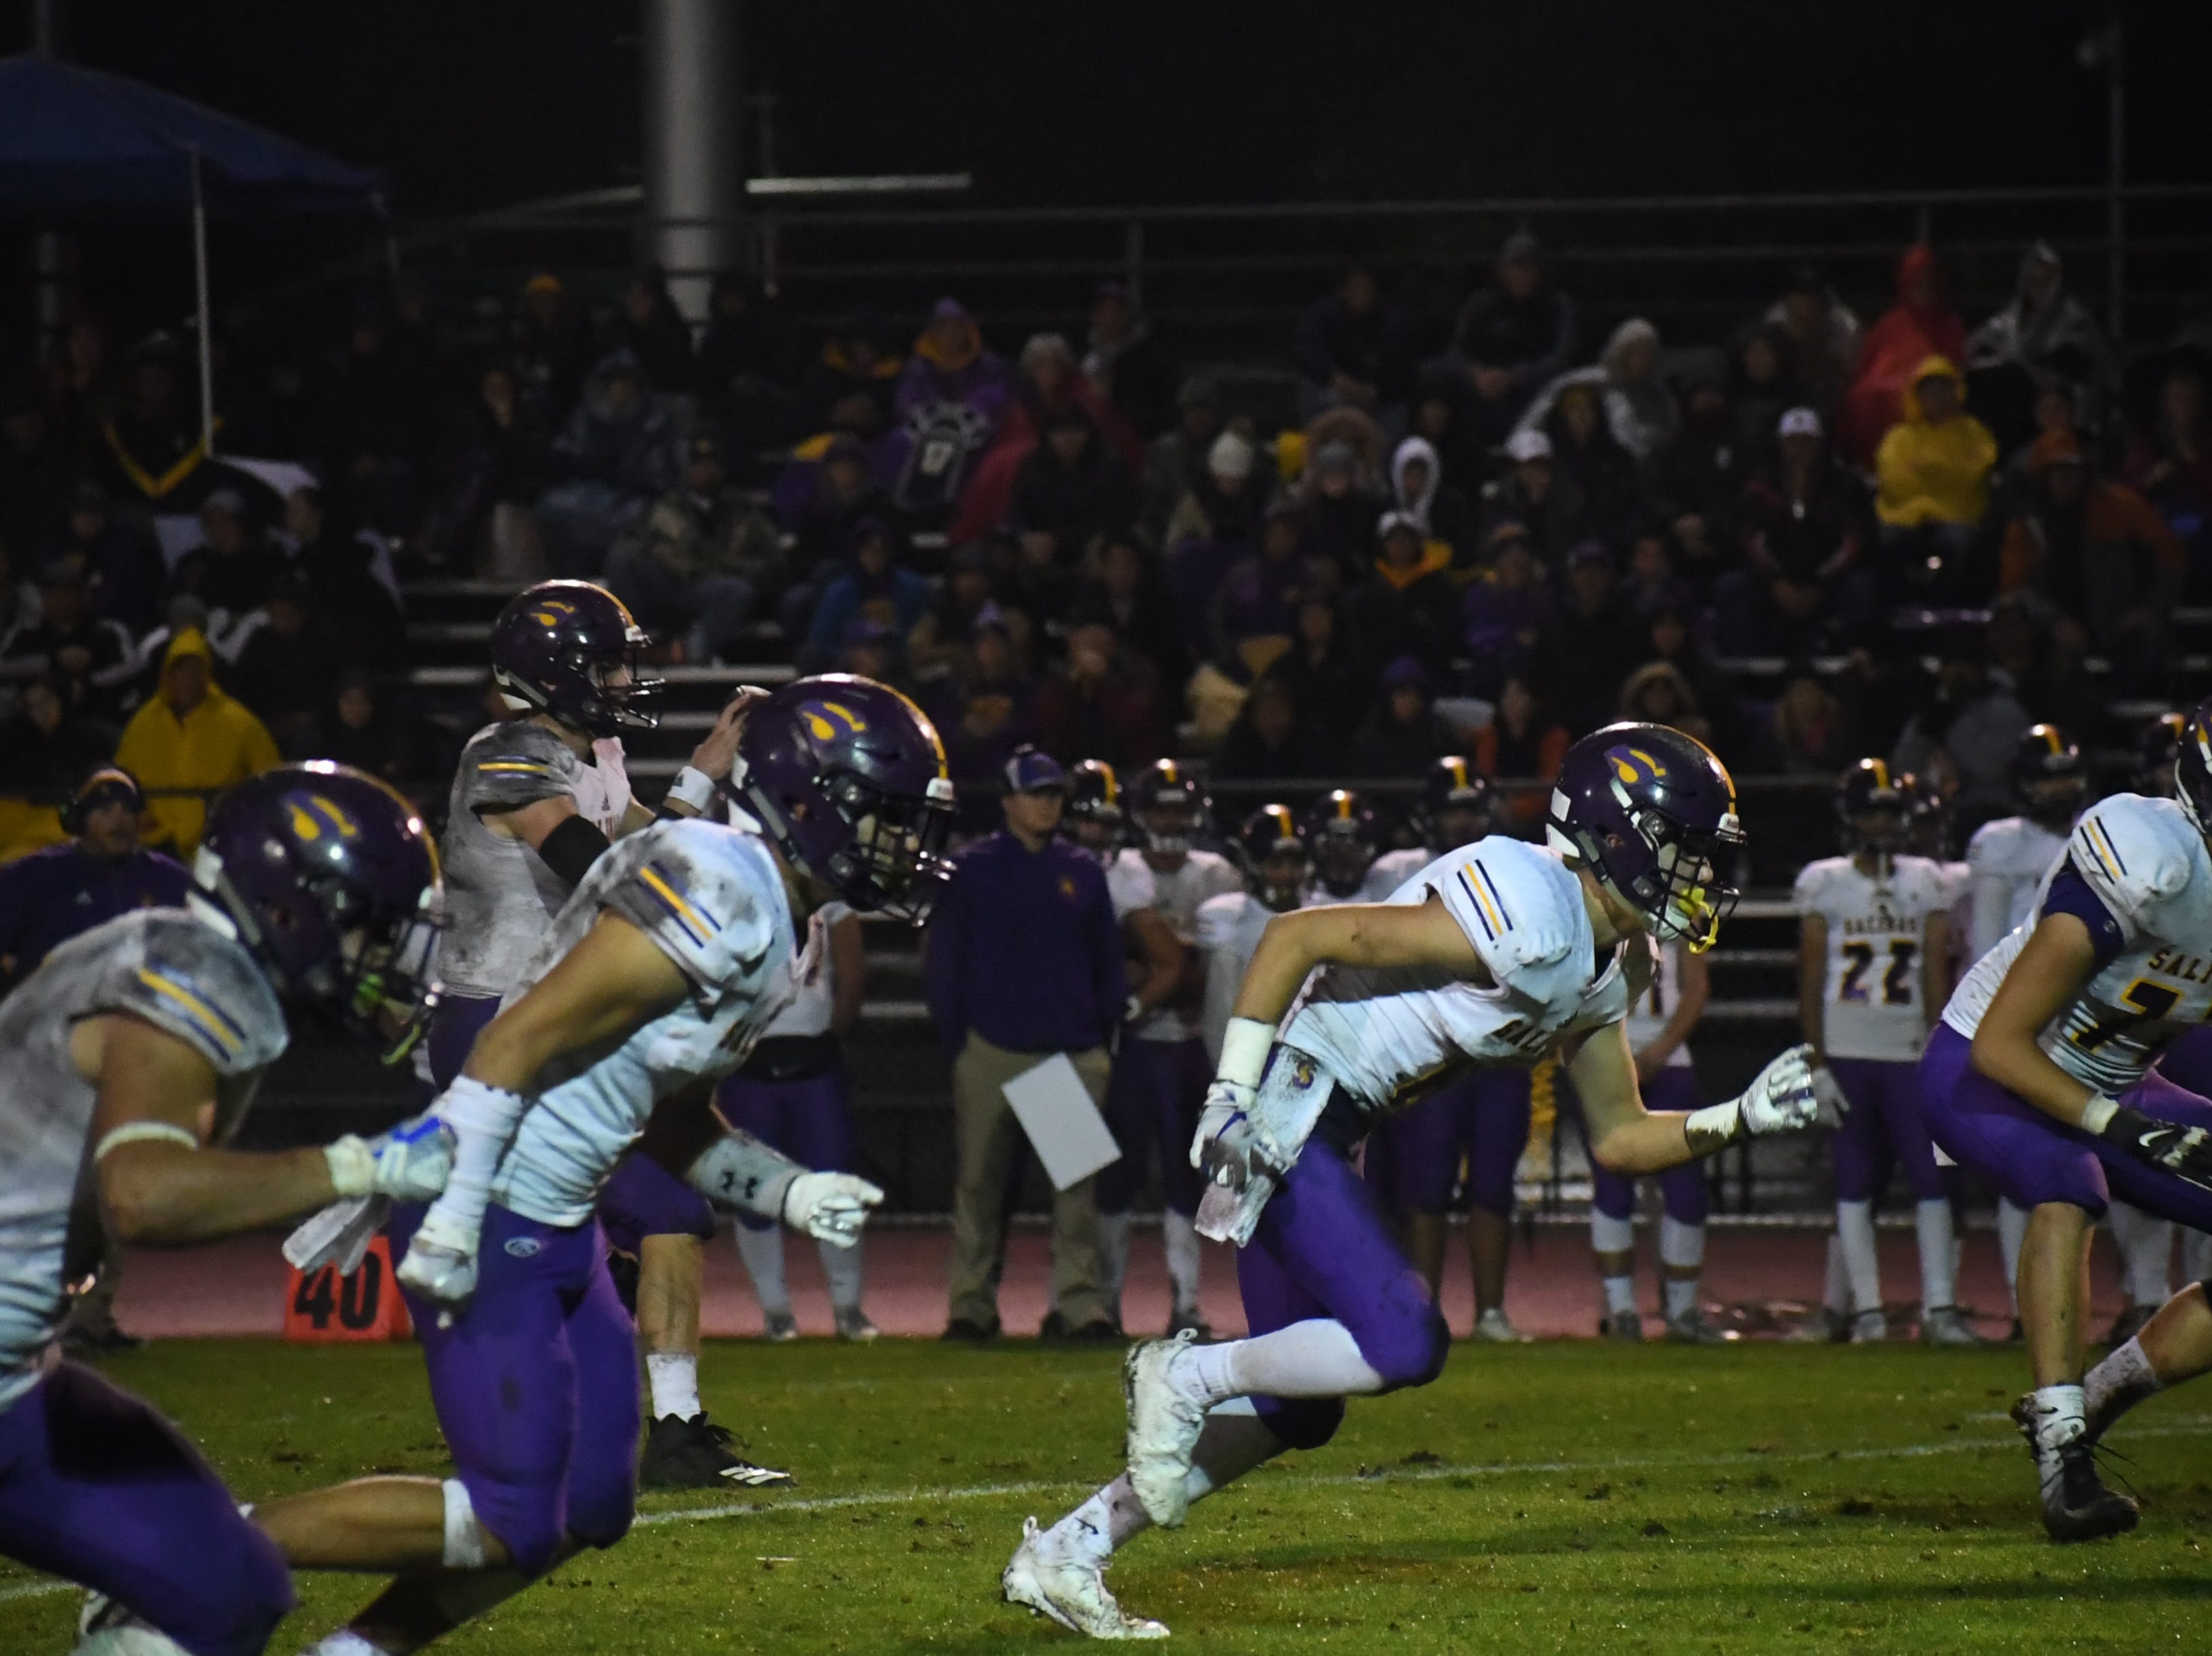 The Salinas wide receivers fire off after the snap.